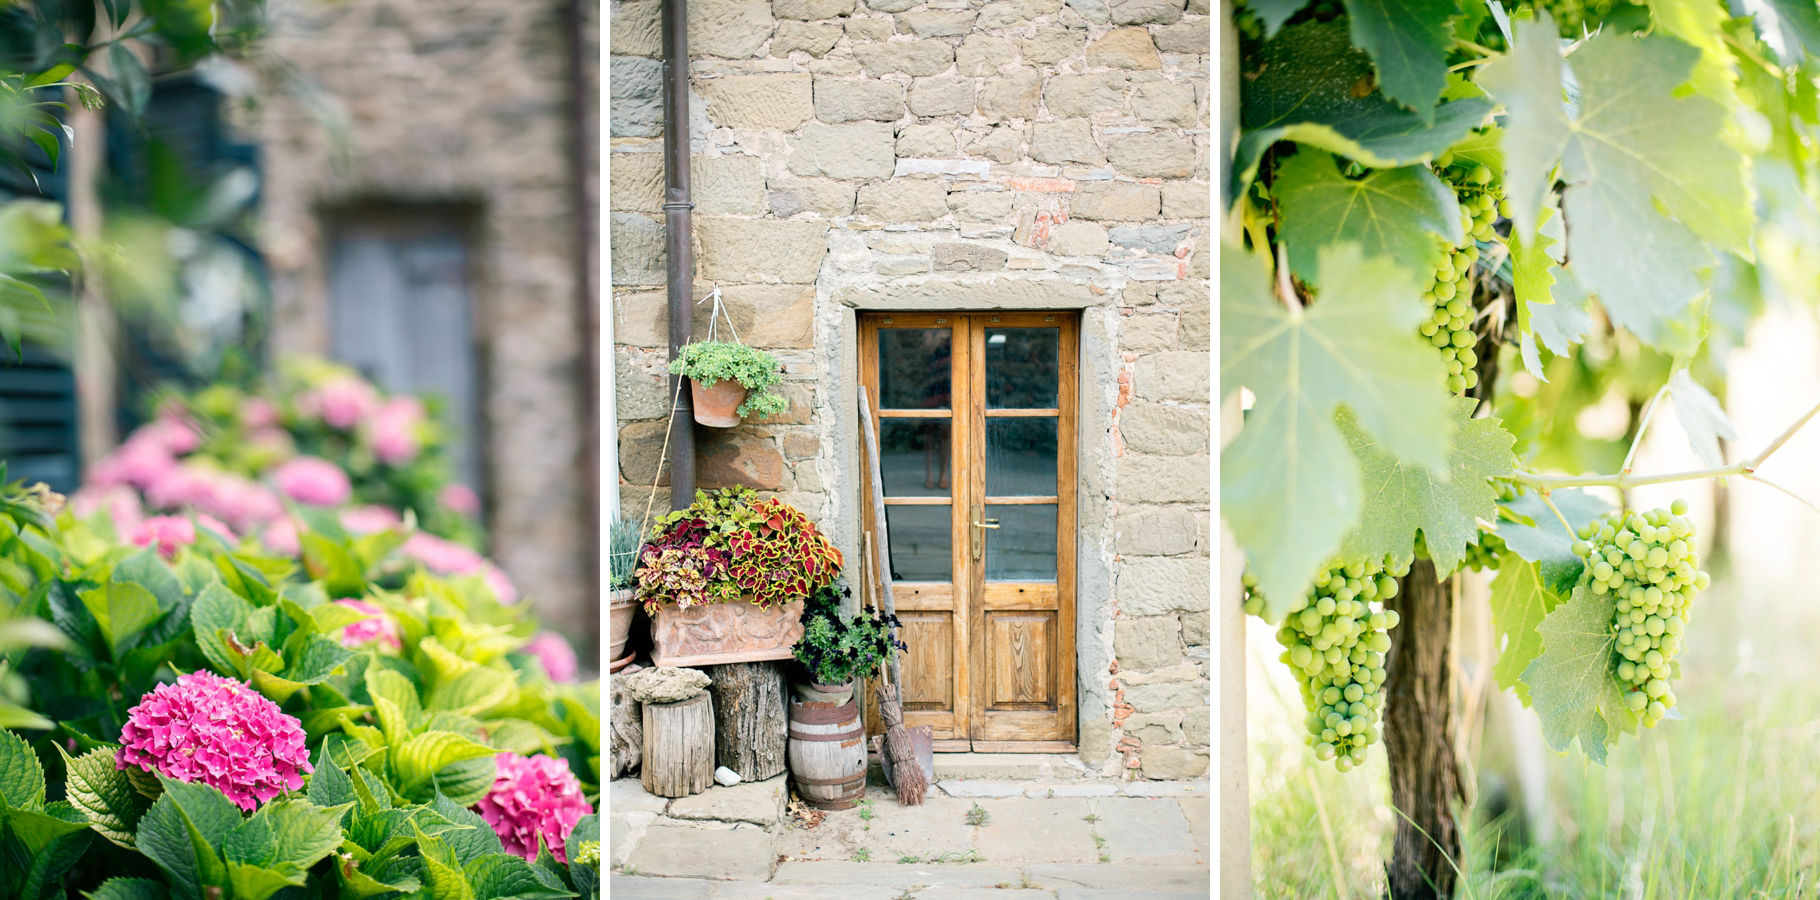 41-2015-Photographer-Year-in-Review-Chianti-Italy-Destination-International-Seattle-Wedding-Photography-by-Betty-Elaine